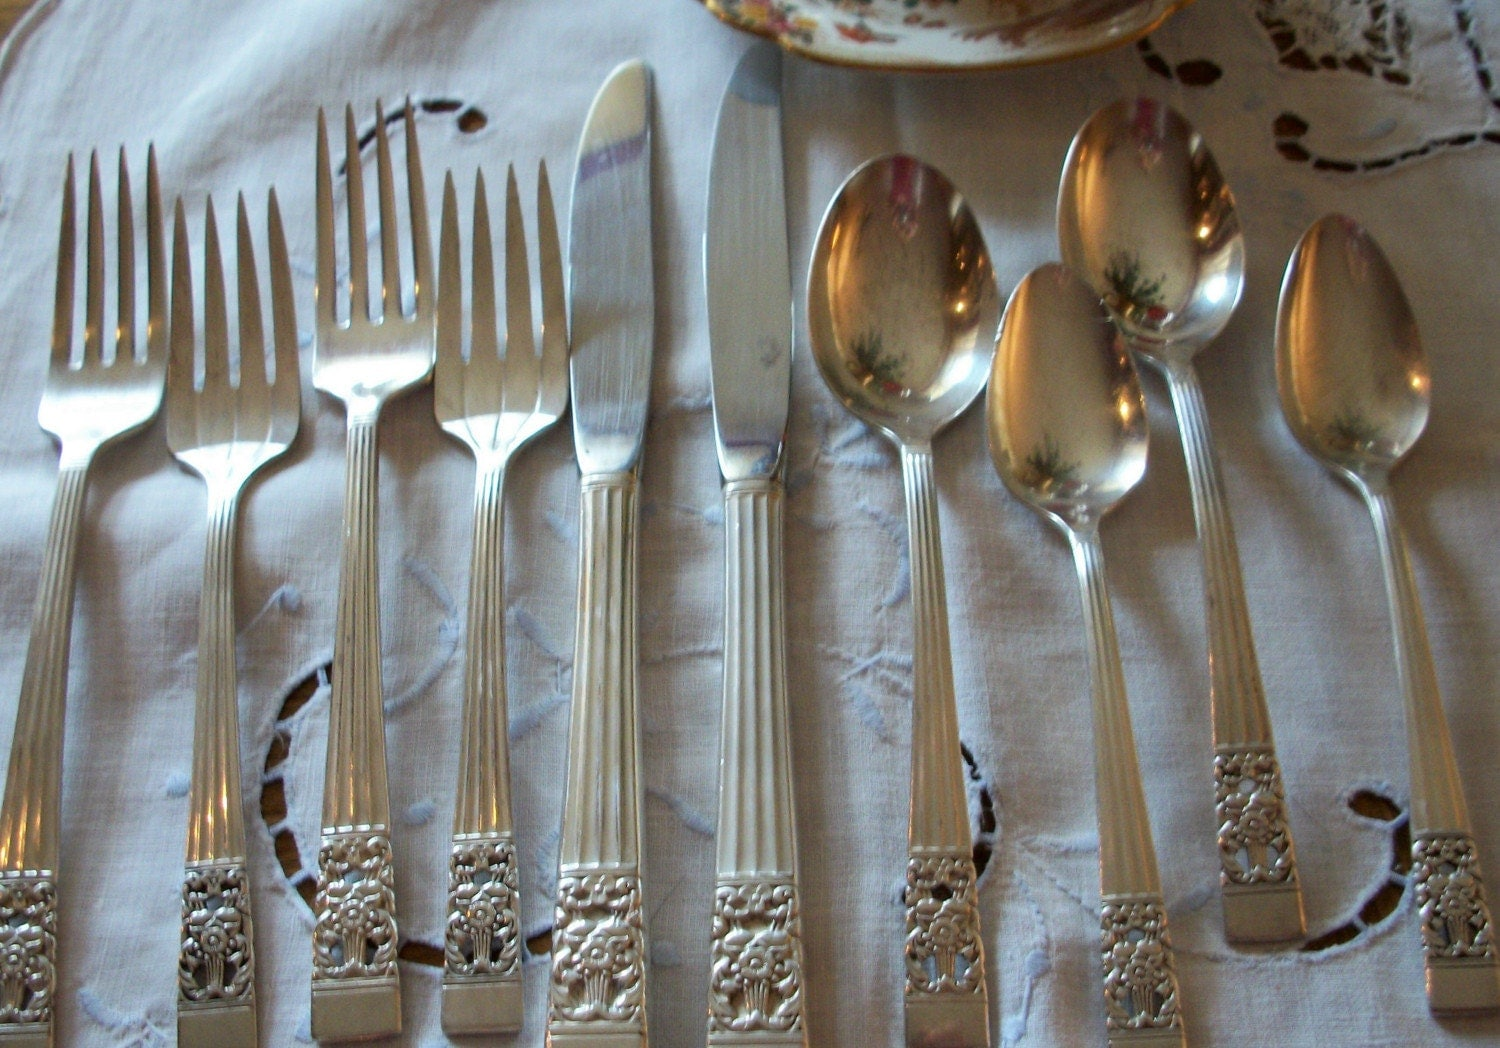 Antique Community Silverware Place Setting By Jannyfays On